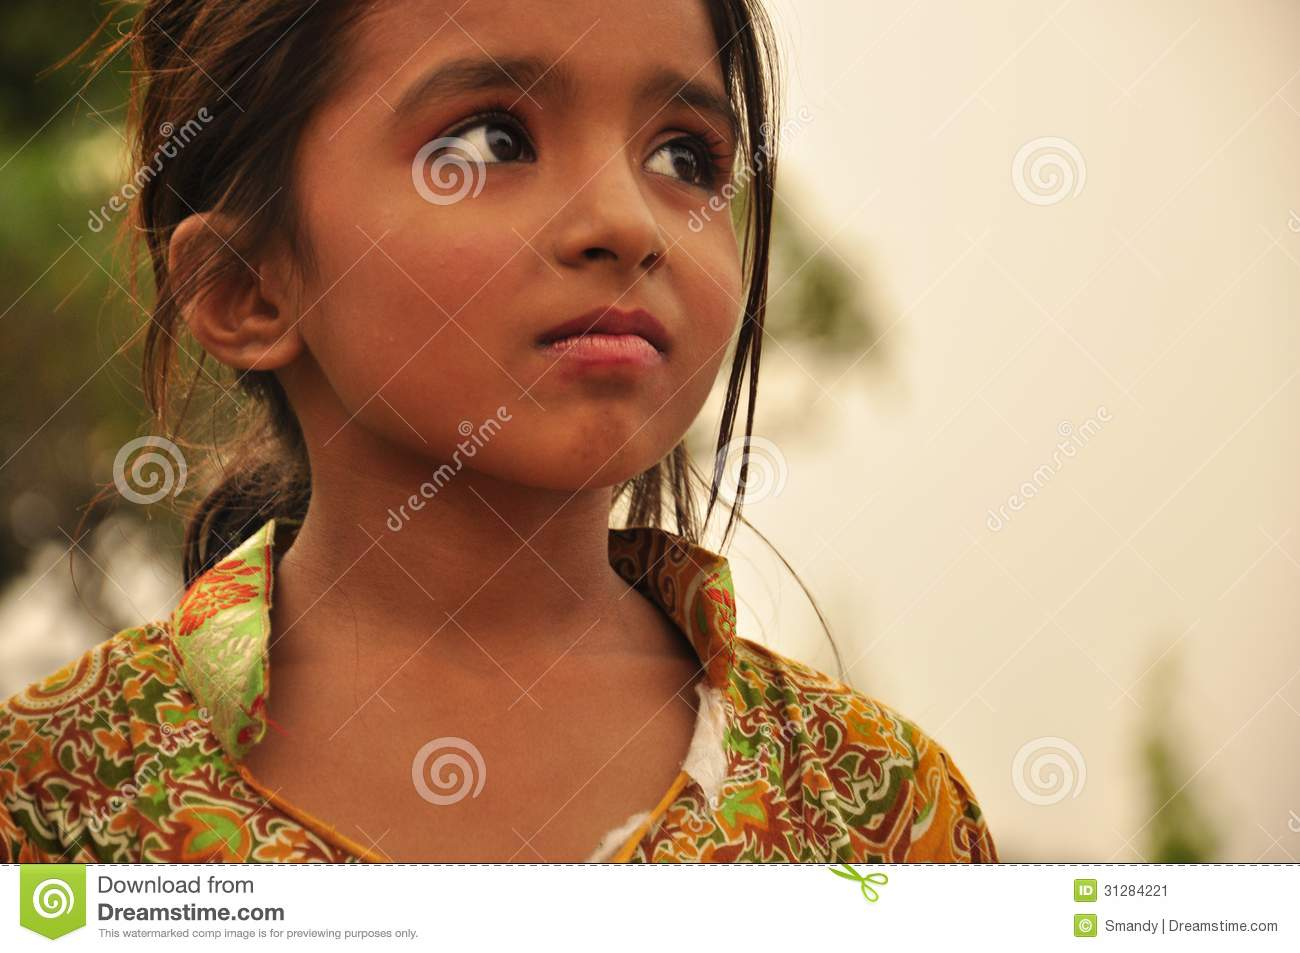 Https Www Dreamstime Com Stock Image Stunning Look Indian Little Girl Beautiful Image31284221